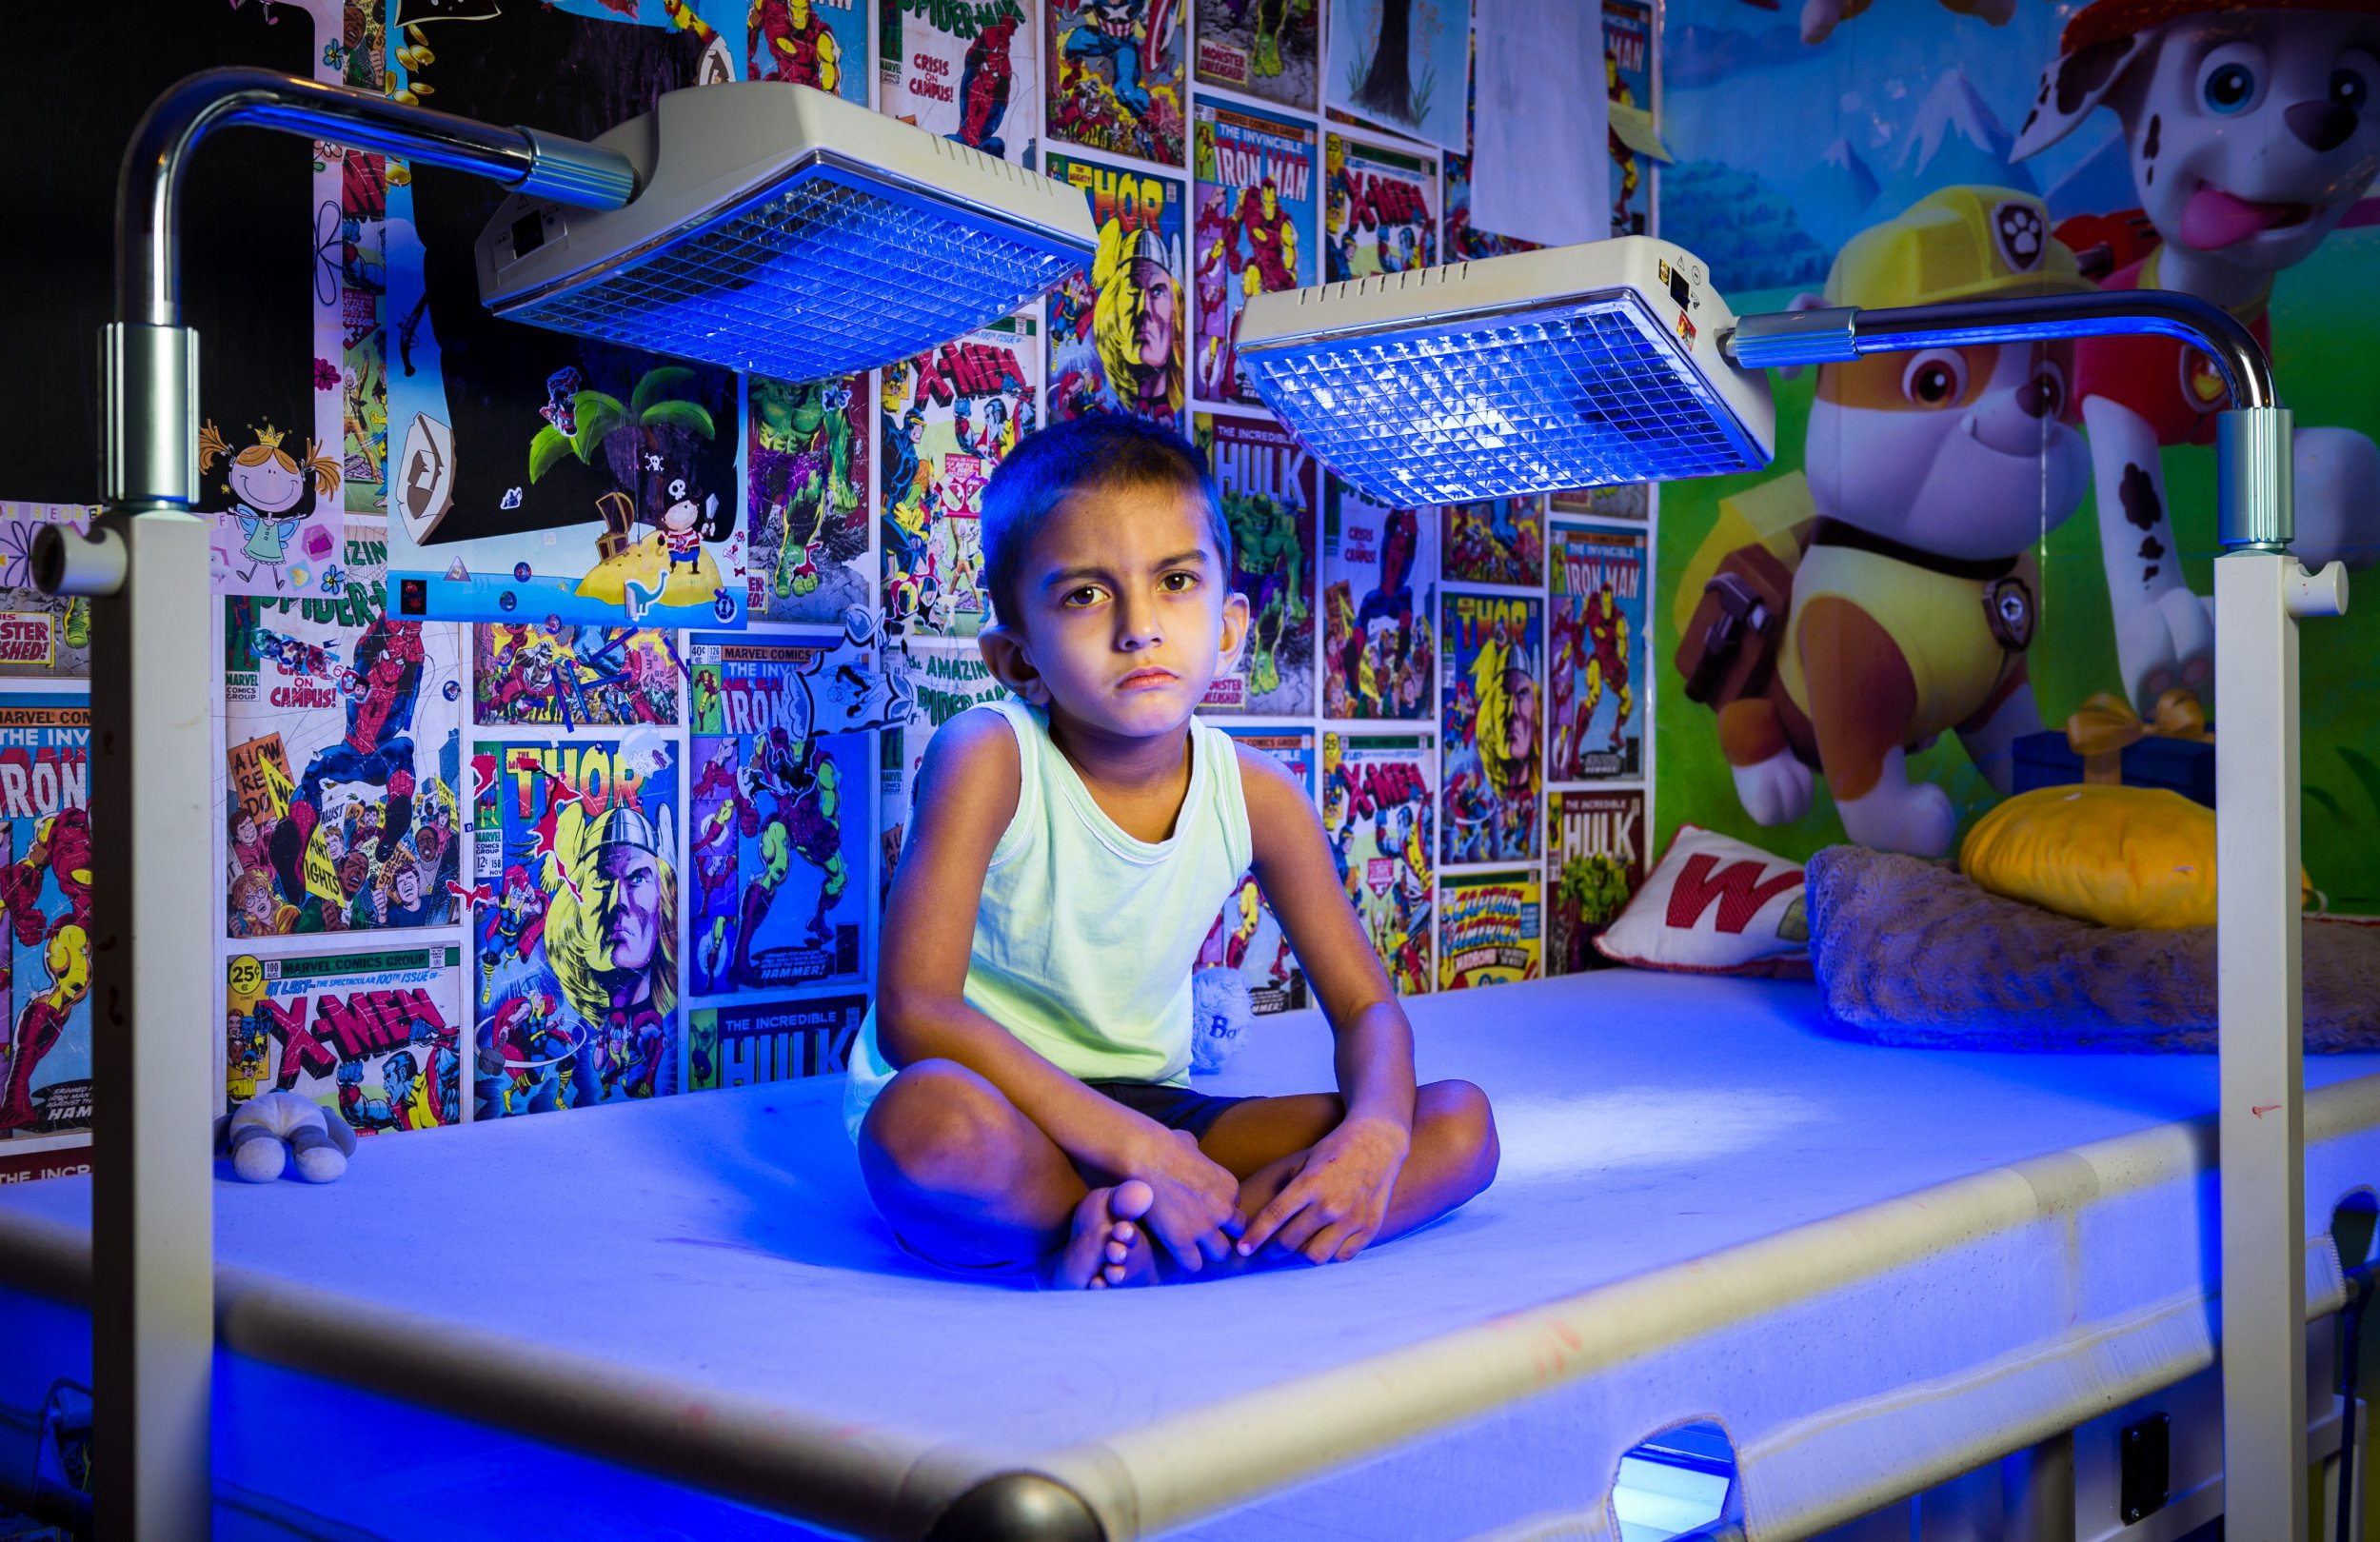 Boy, 4, must spend 20 hours a day under bright lights to treat rare liver disease